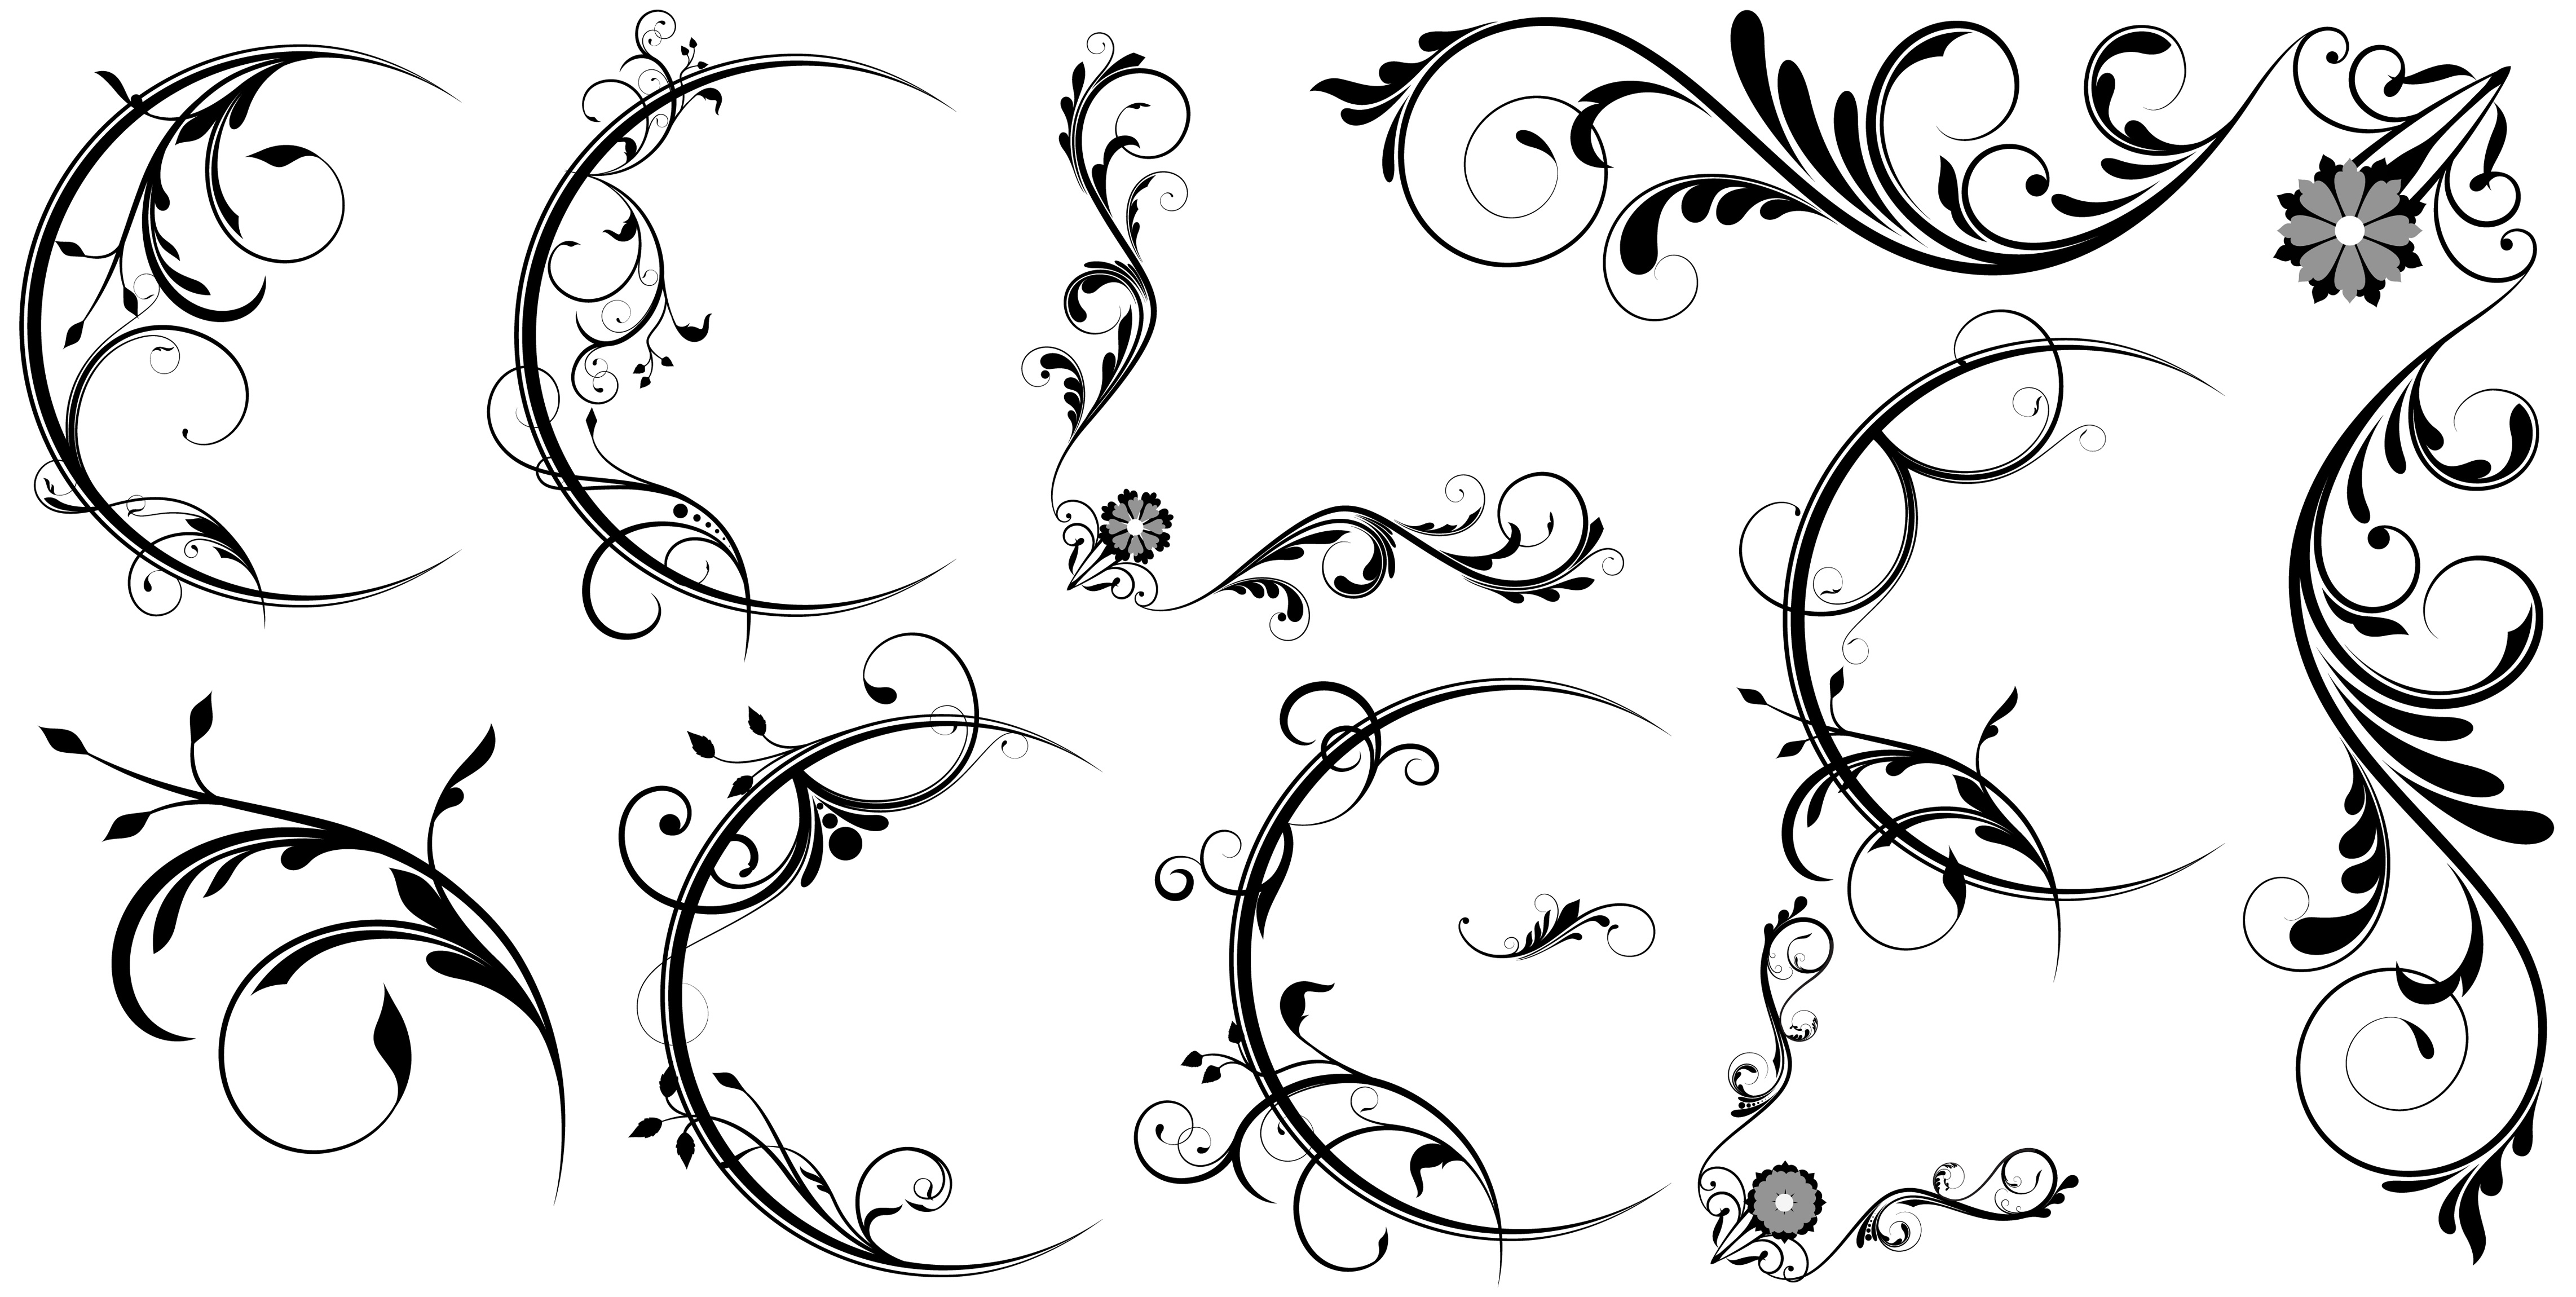 13 Free Photoshop Vector Banners Images